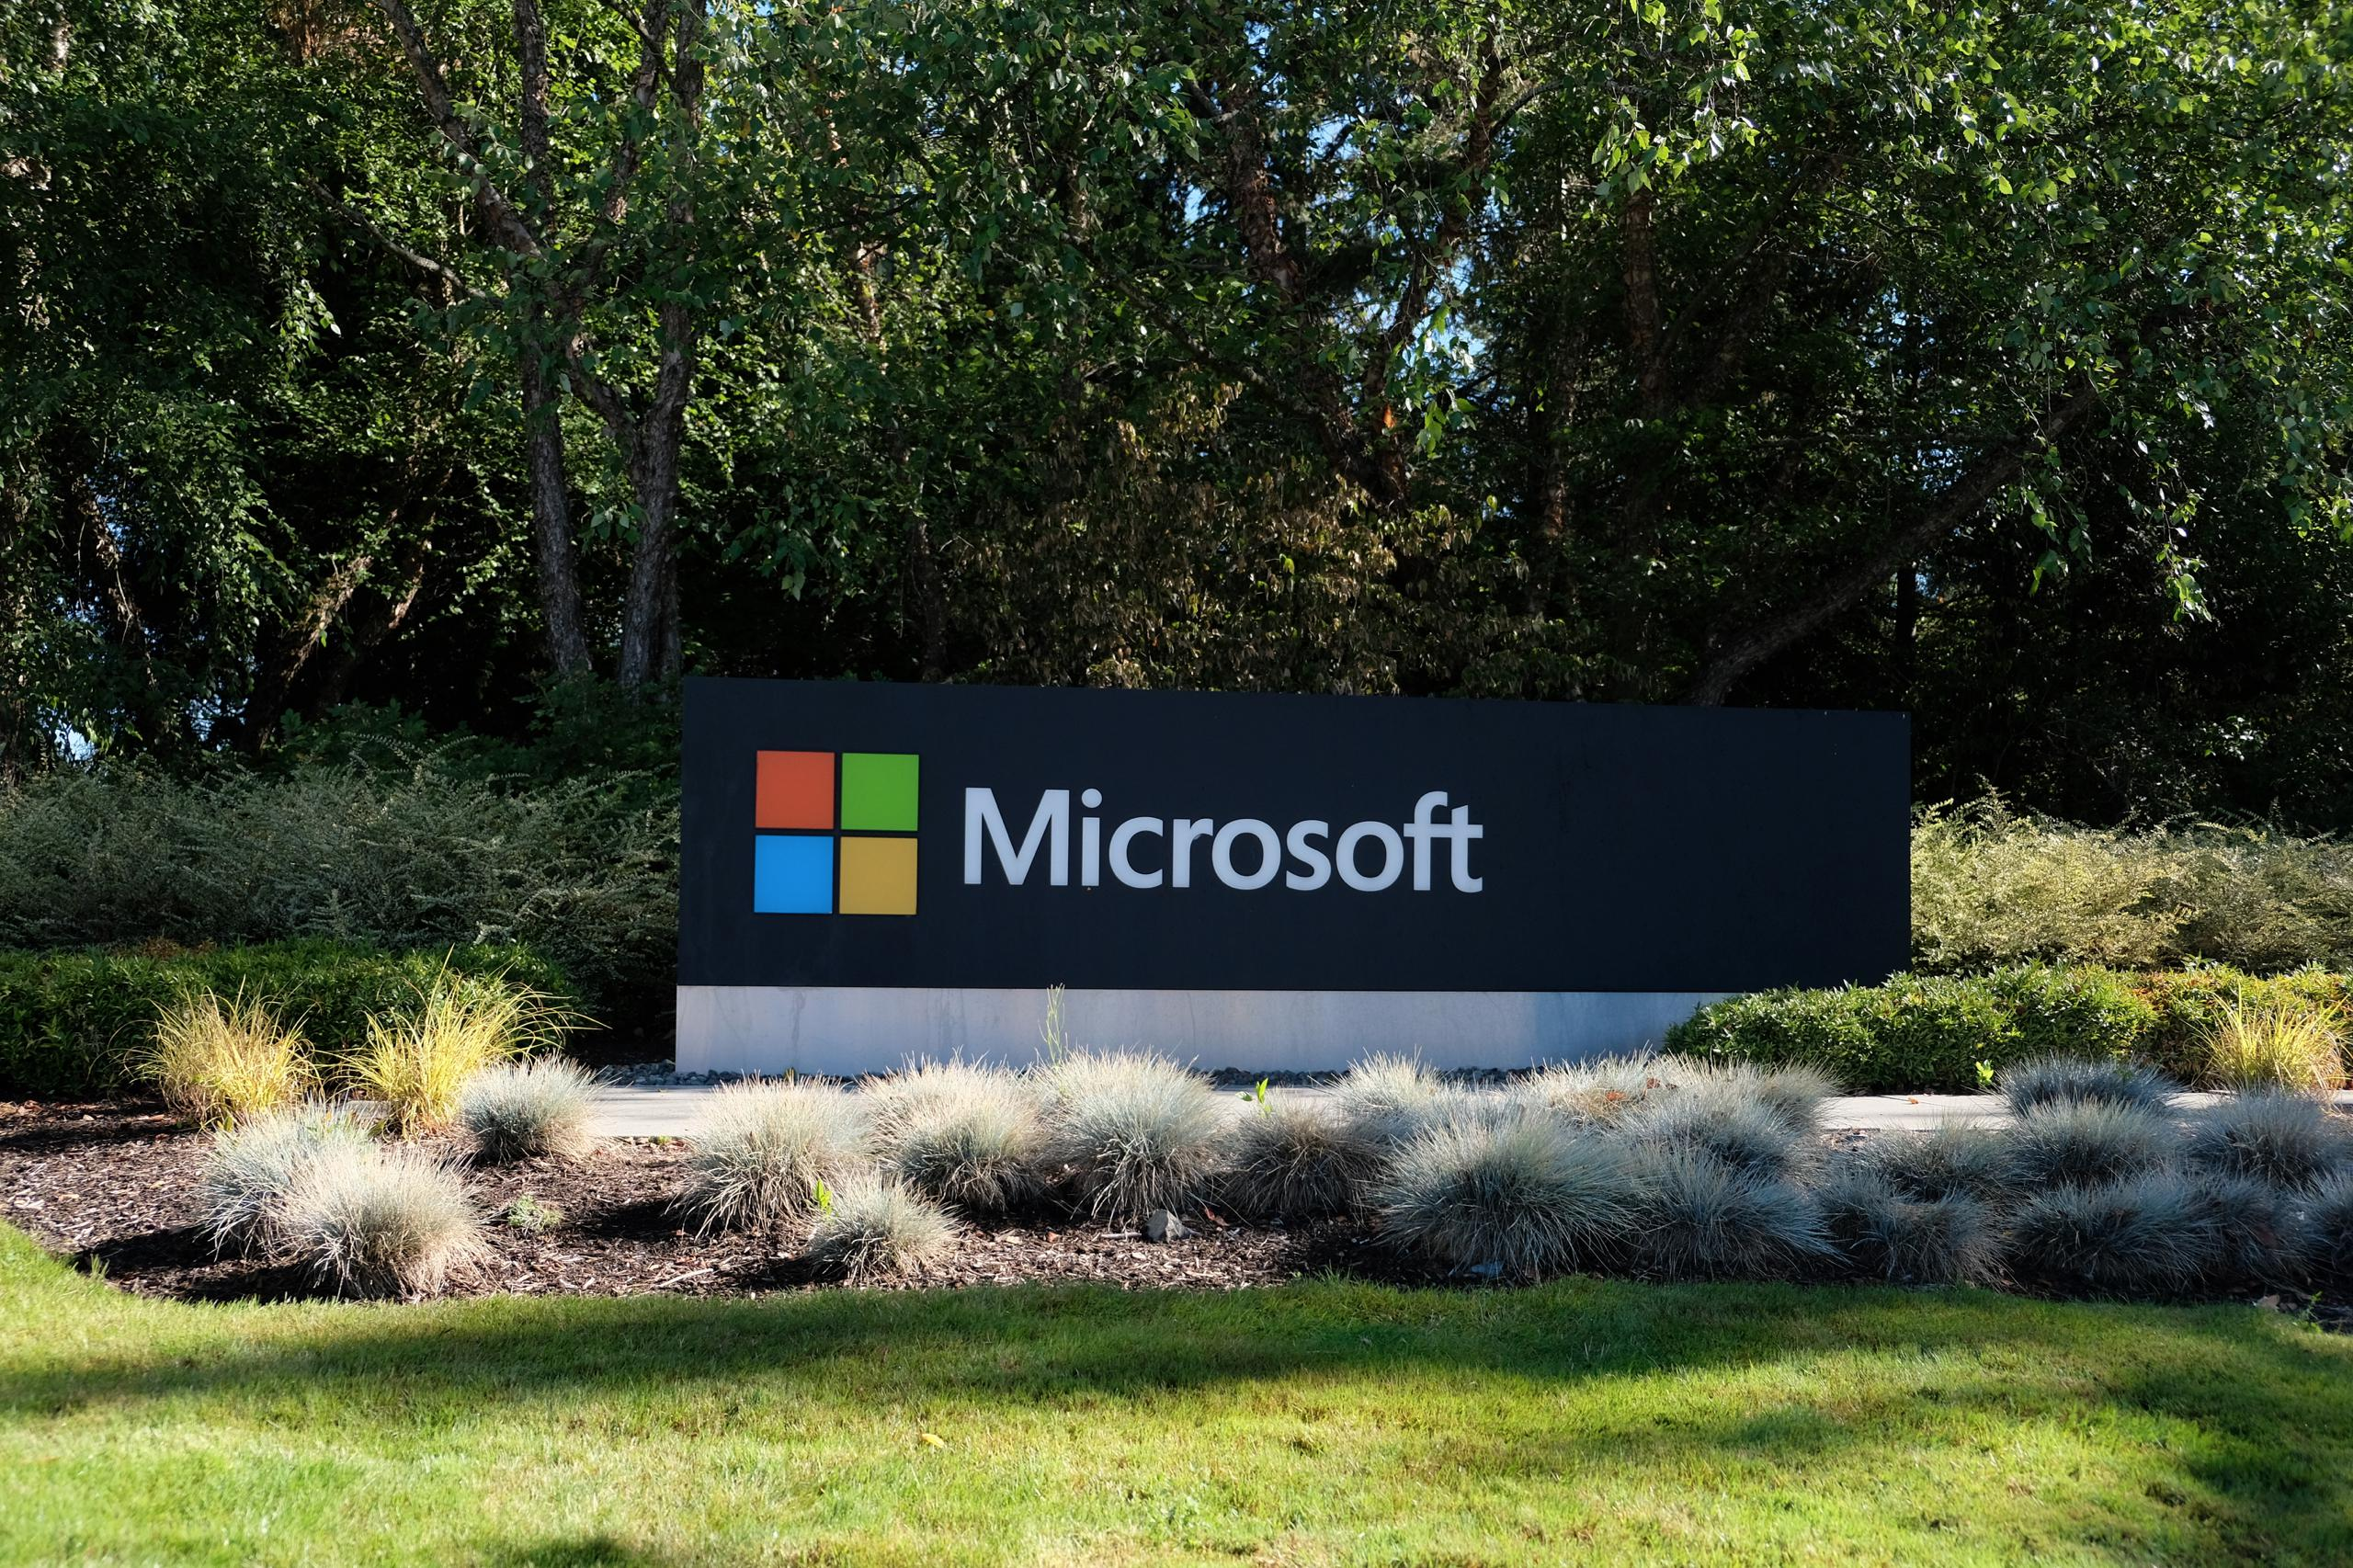 Entrance to Microsoft's corporate headquarters in Redmond, Washington.